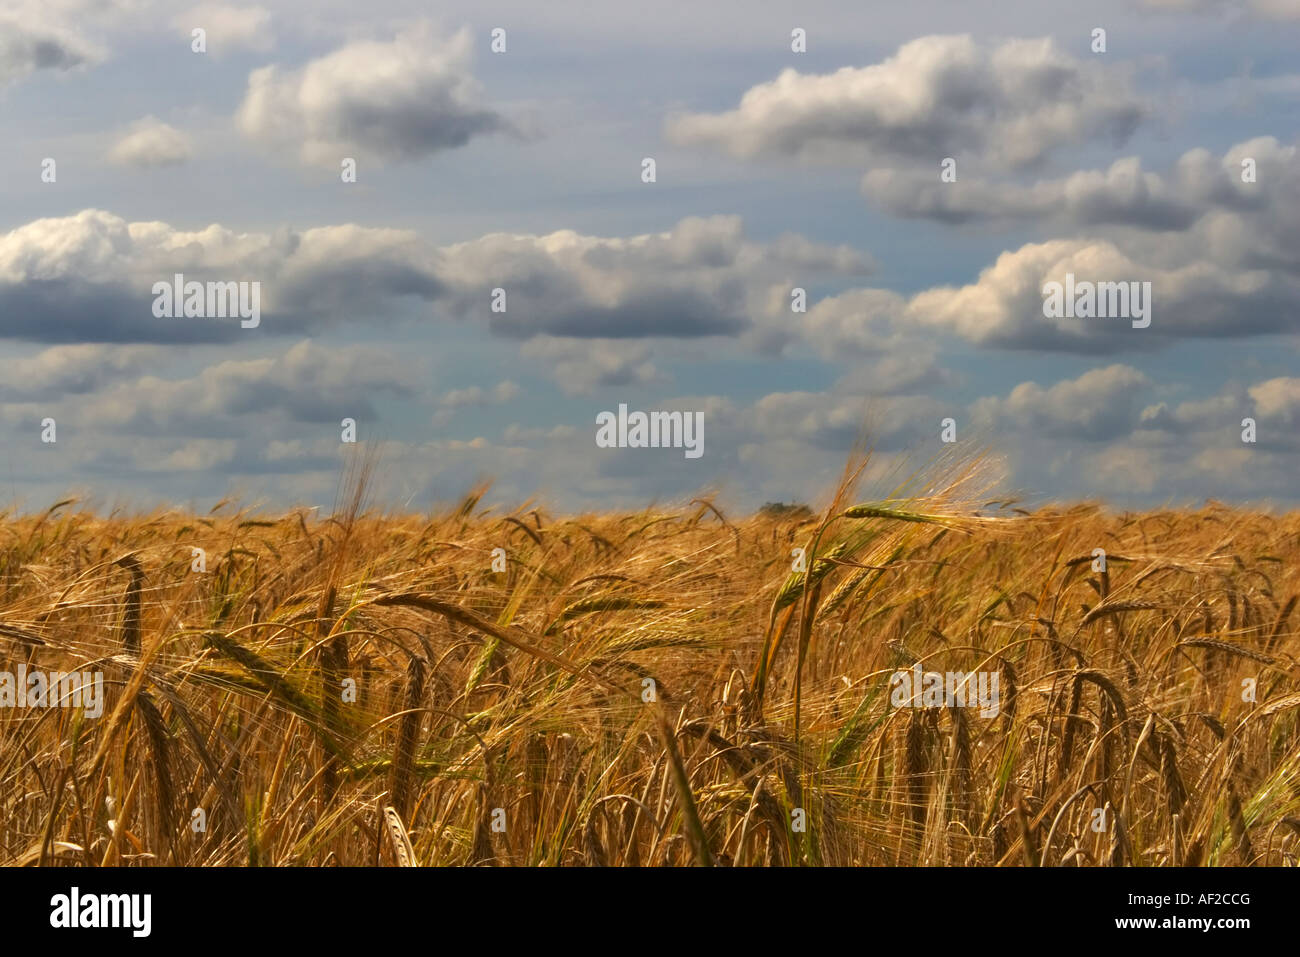 A field of wheat set against a cloudy sky - Stock Image